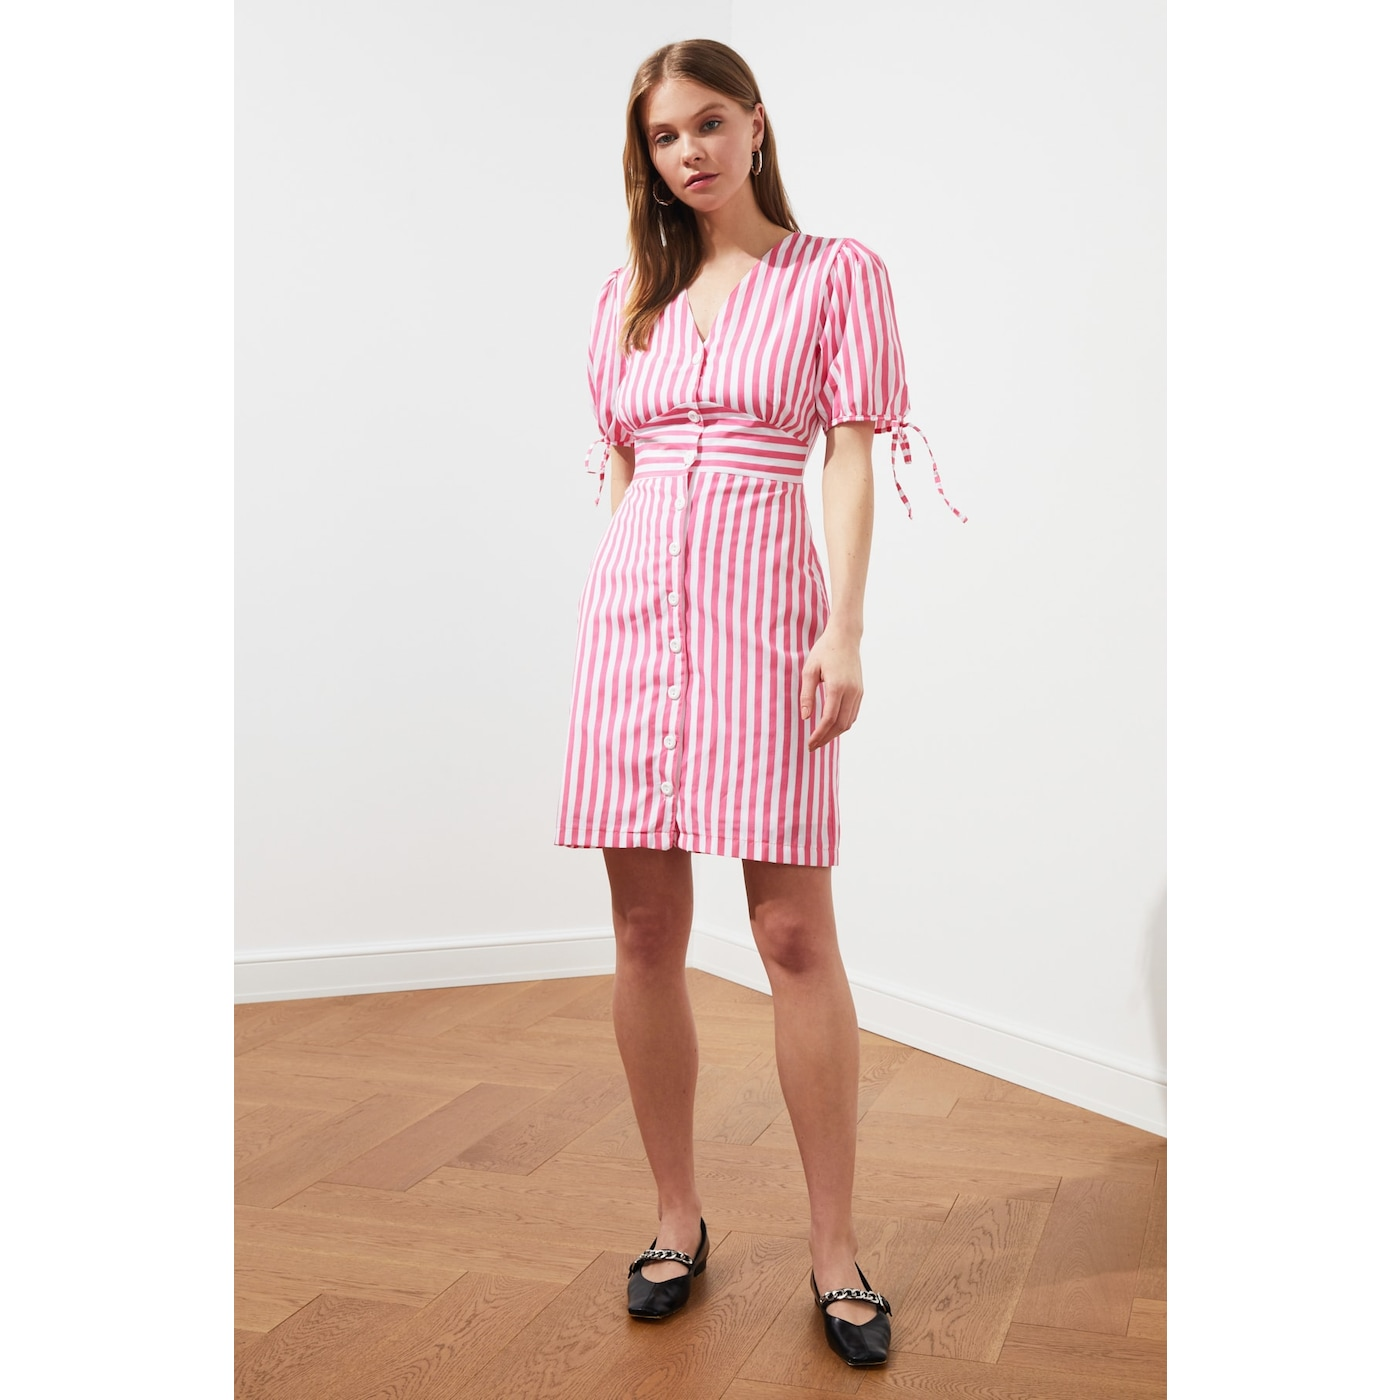 Trendyol Pink Striped Shirt Dress dámské 34